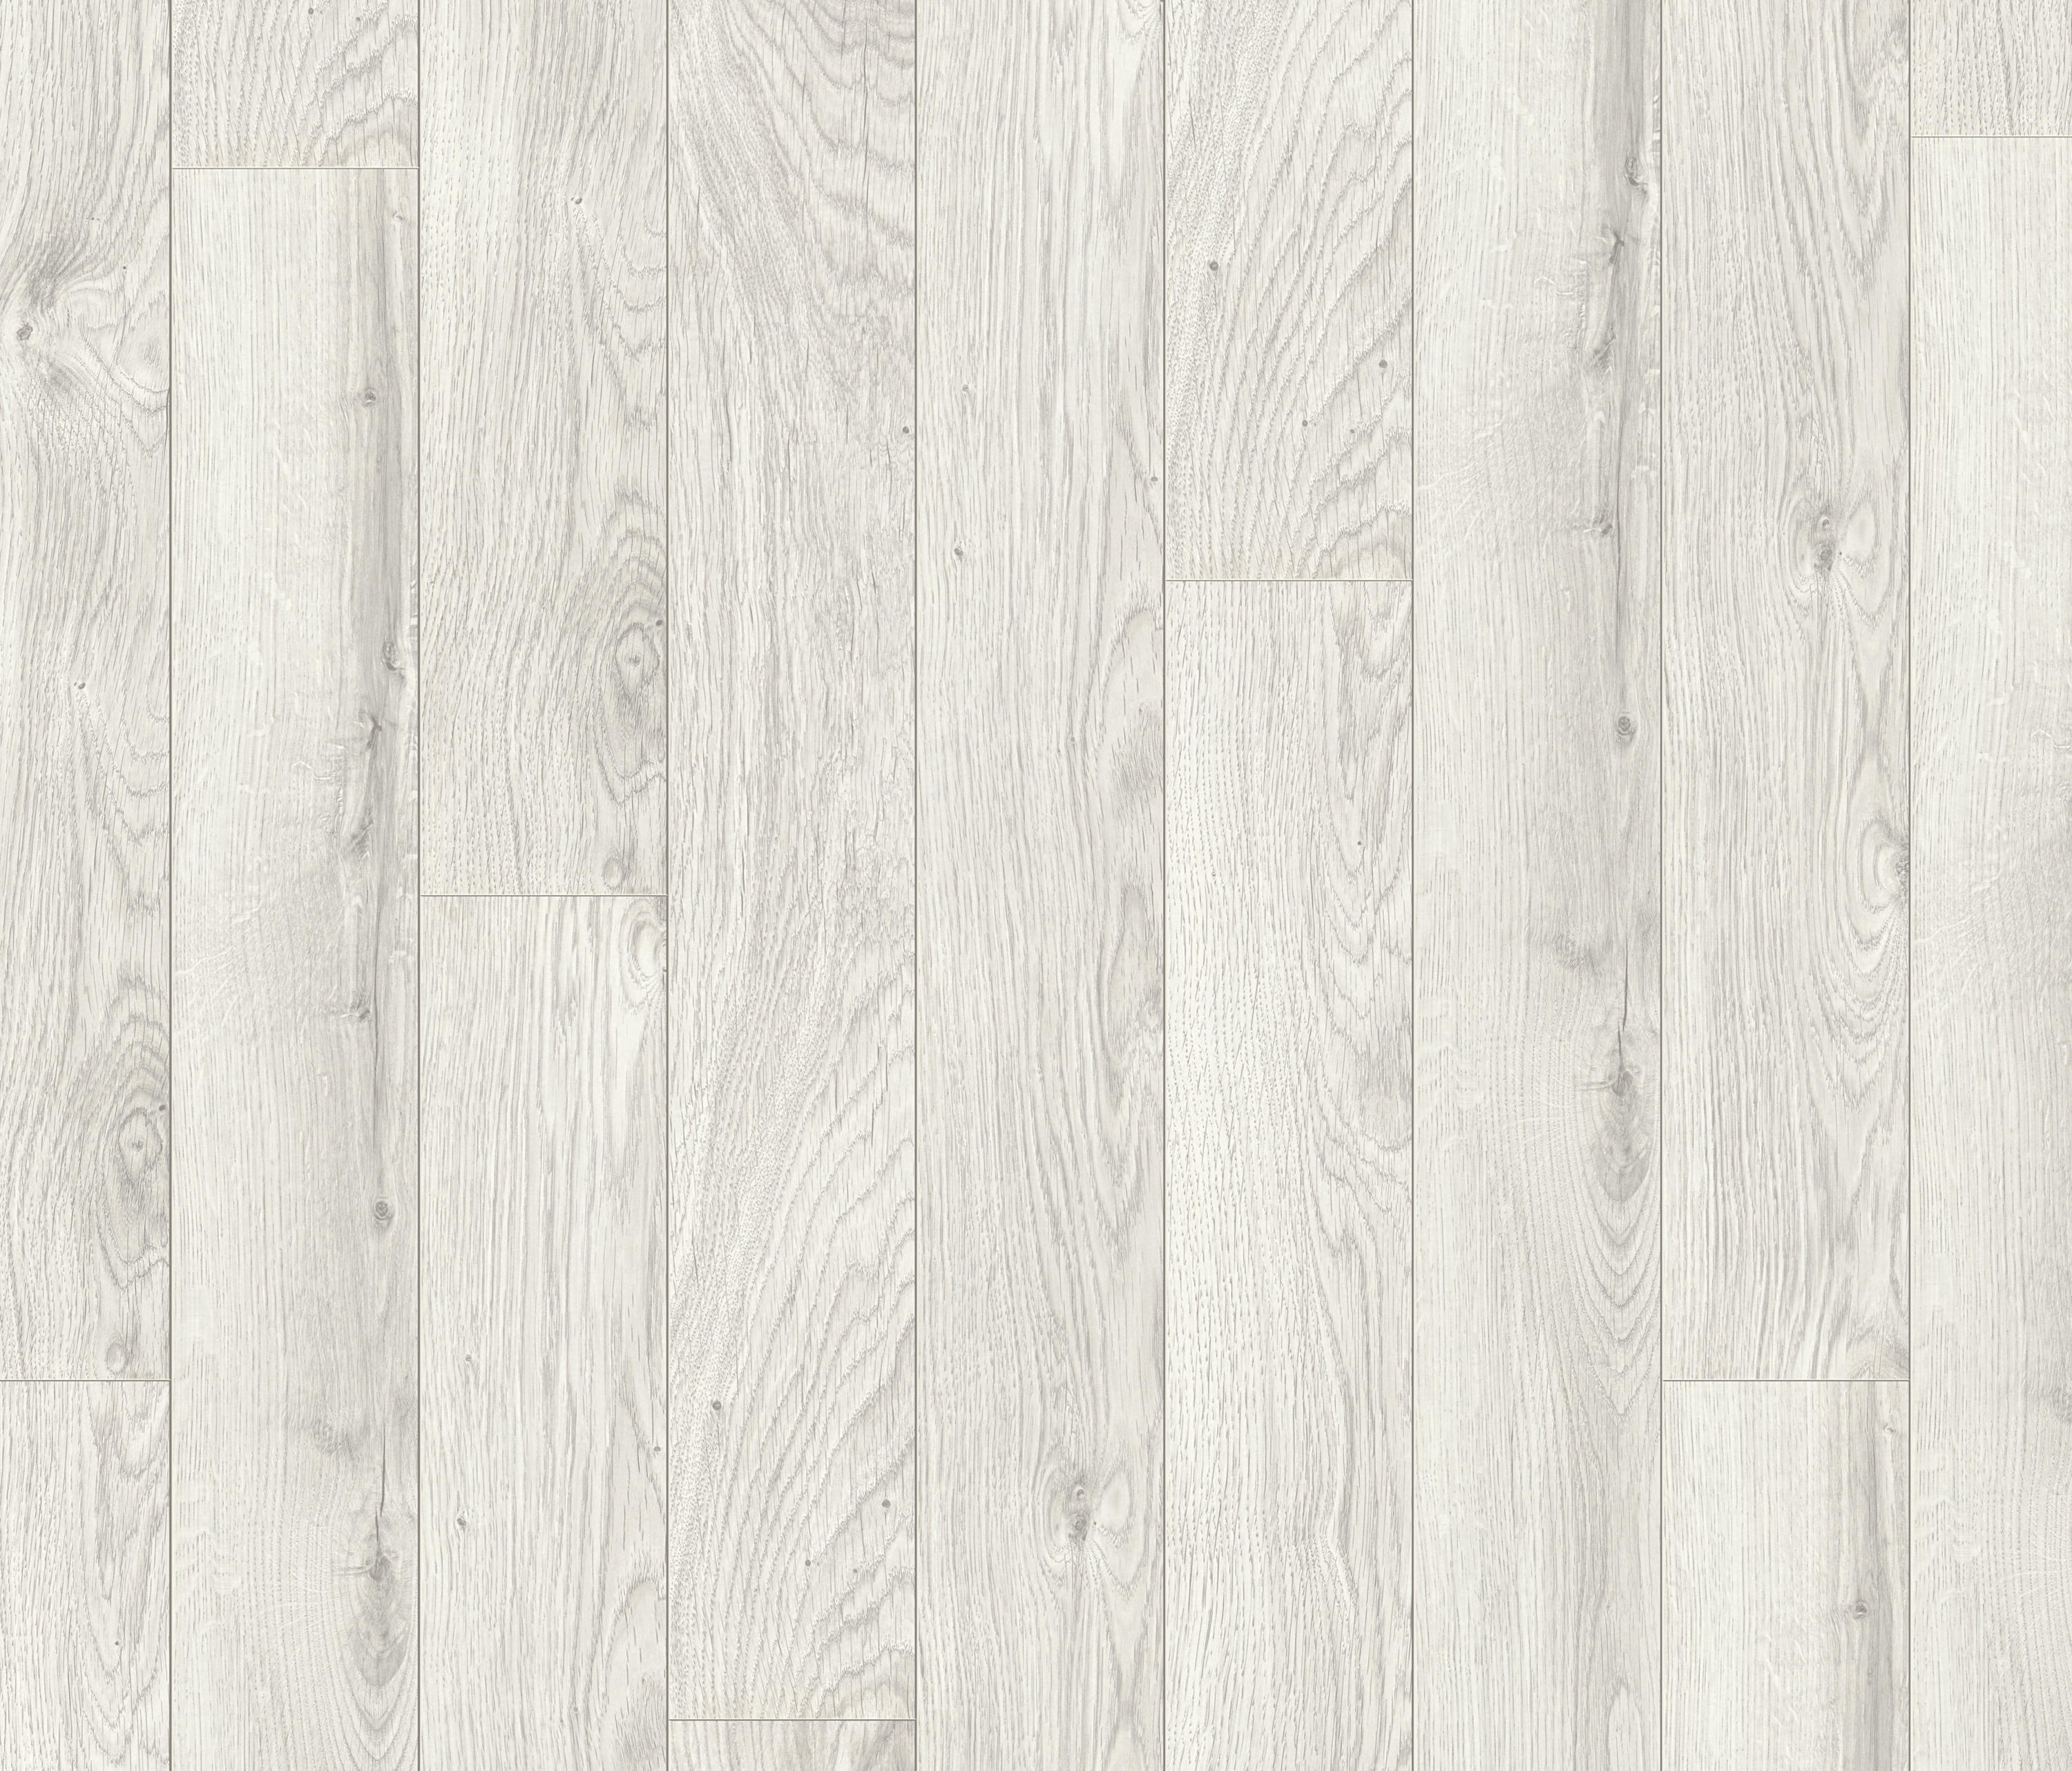 Plank Silver Oak Laminate Flooring From Pergo Architonic